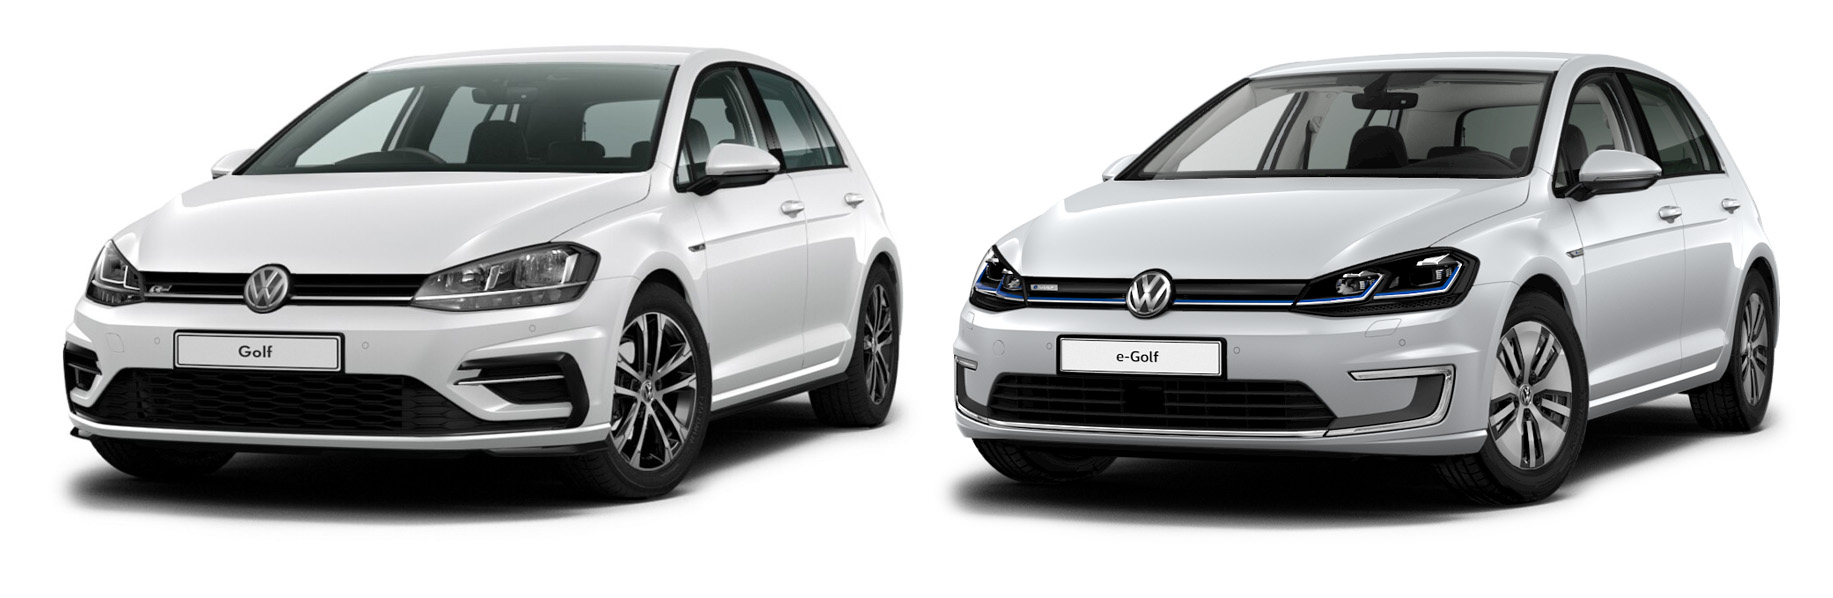 Compare the electric VW Golf (e-Golf) to petrol VW Golfs